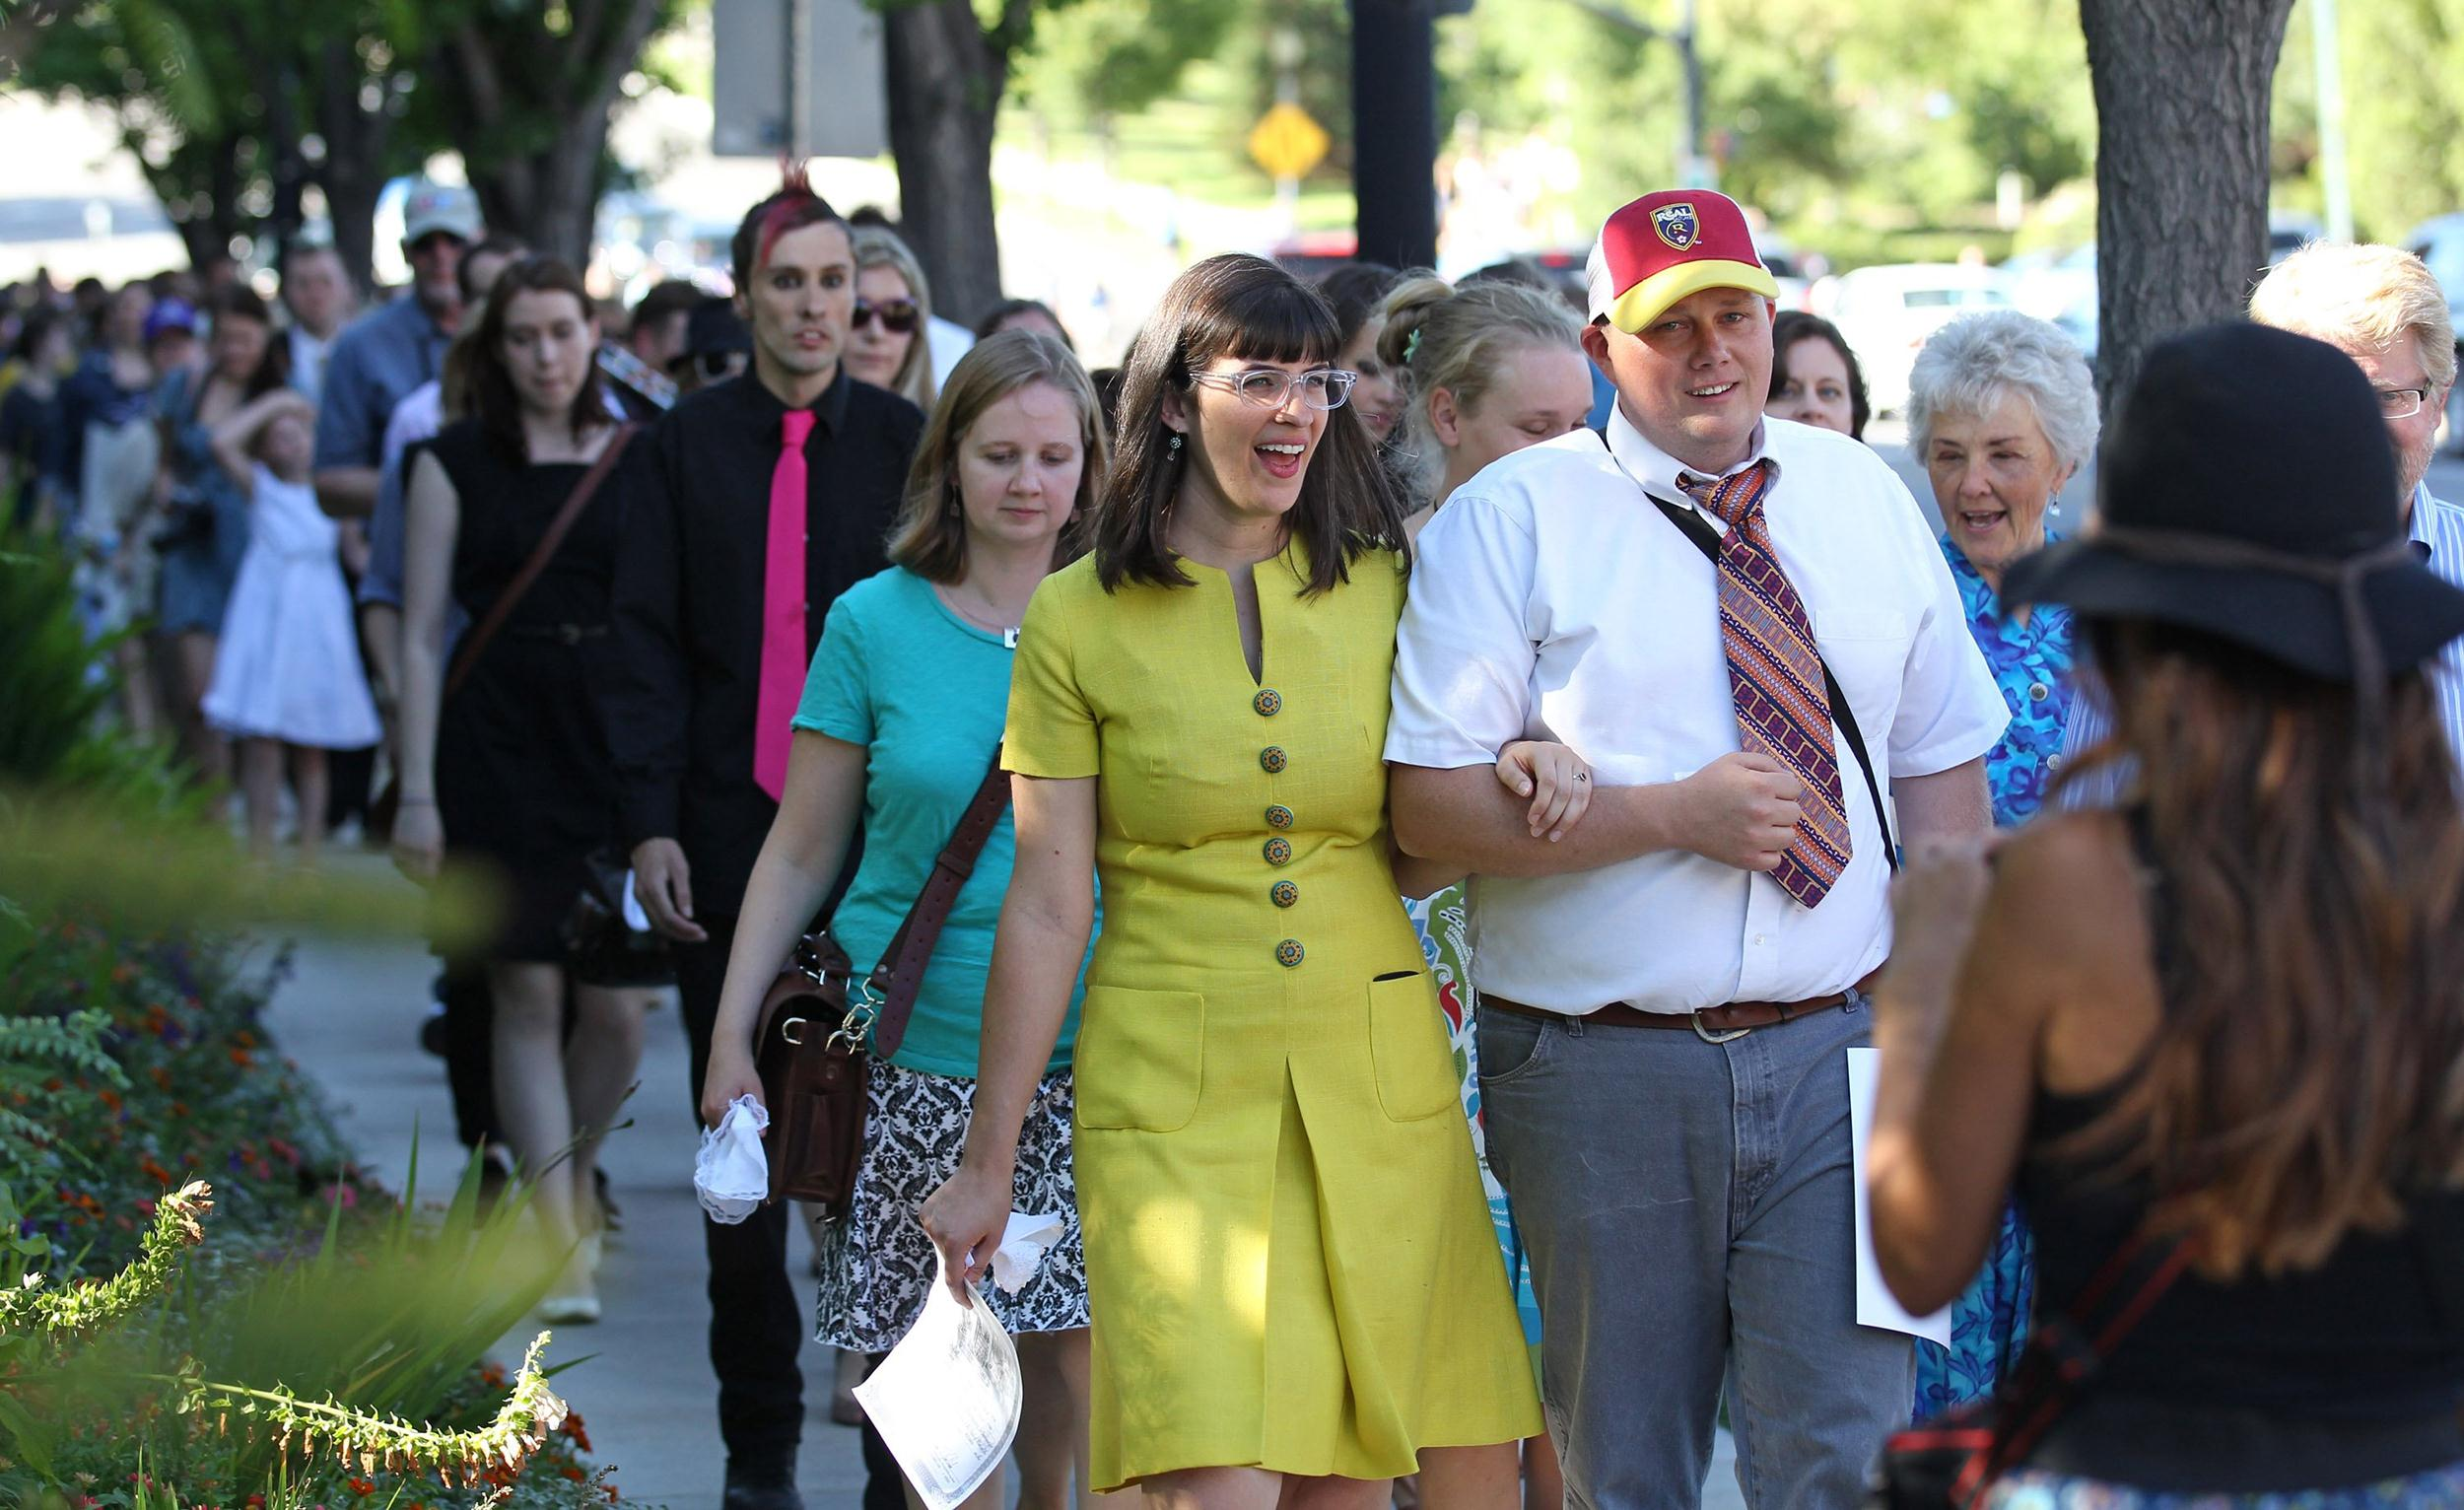 Image: Kate Kelly, center, walks with supporters to the Church Office Building of the Church of Jesus Christ of Latter-day Saints during a vigil